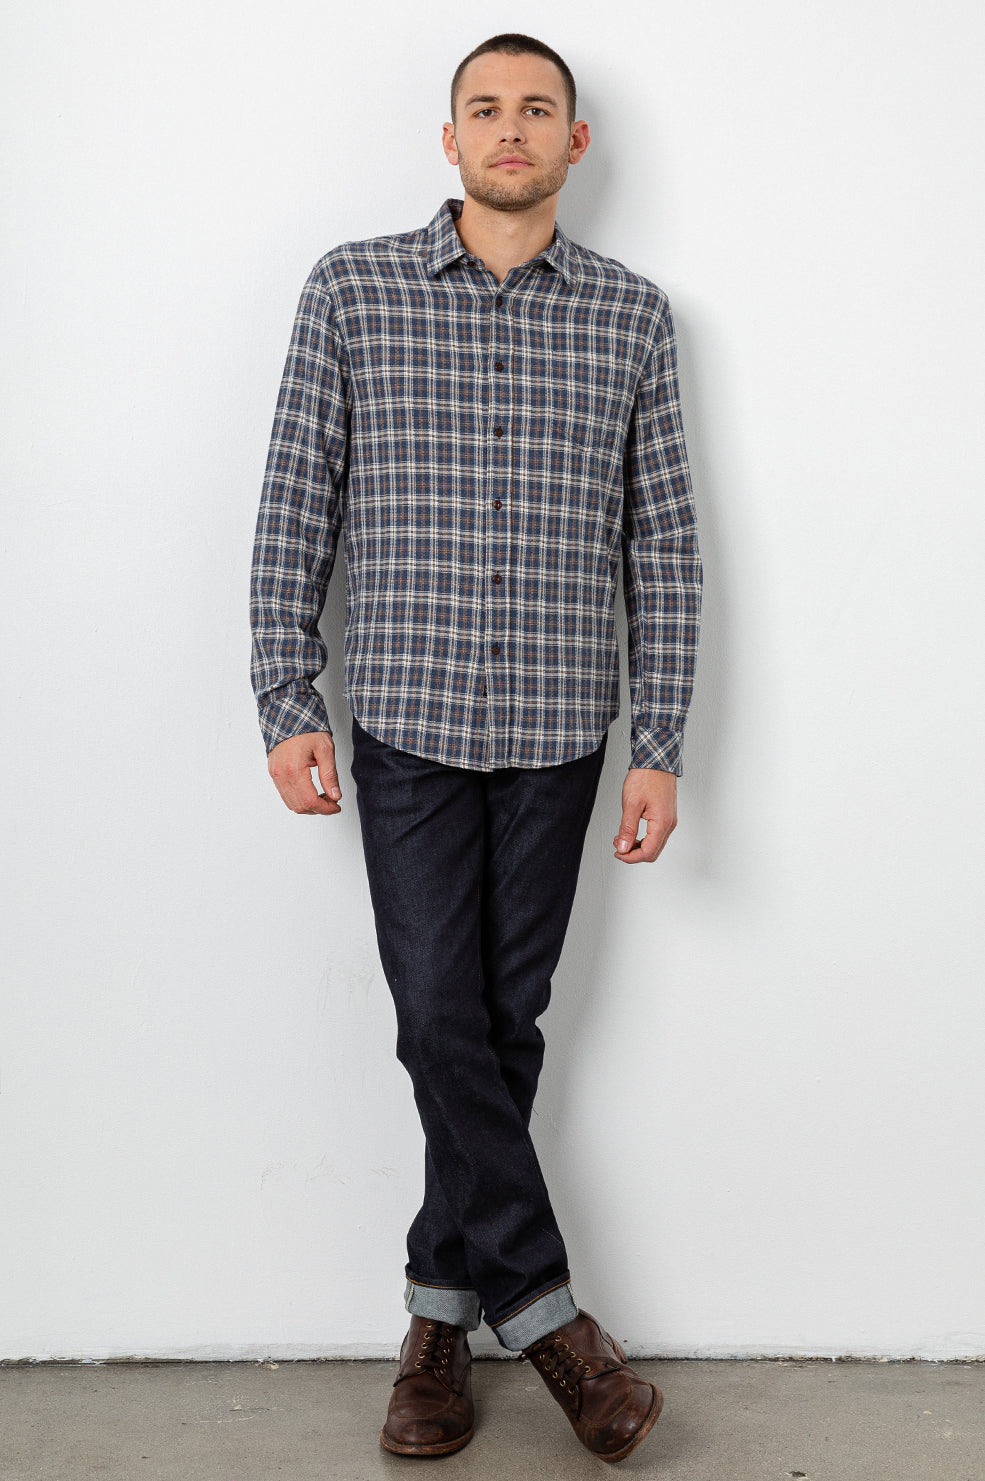 Lennox Long sleeve, button-down, relaxed fit shirt with single chest pocket in emerald heather blue, cream, and beige plaid - front